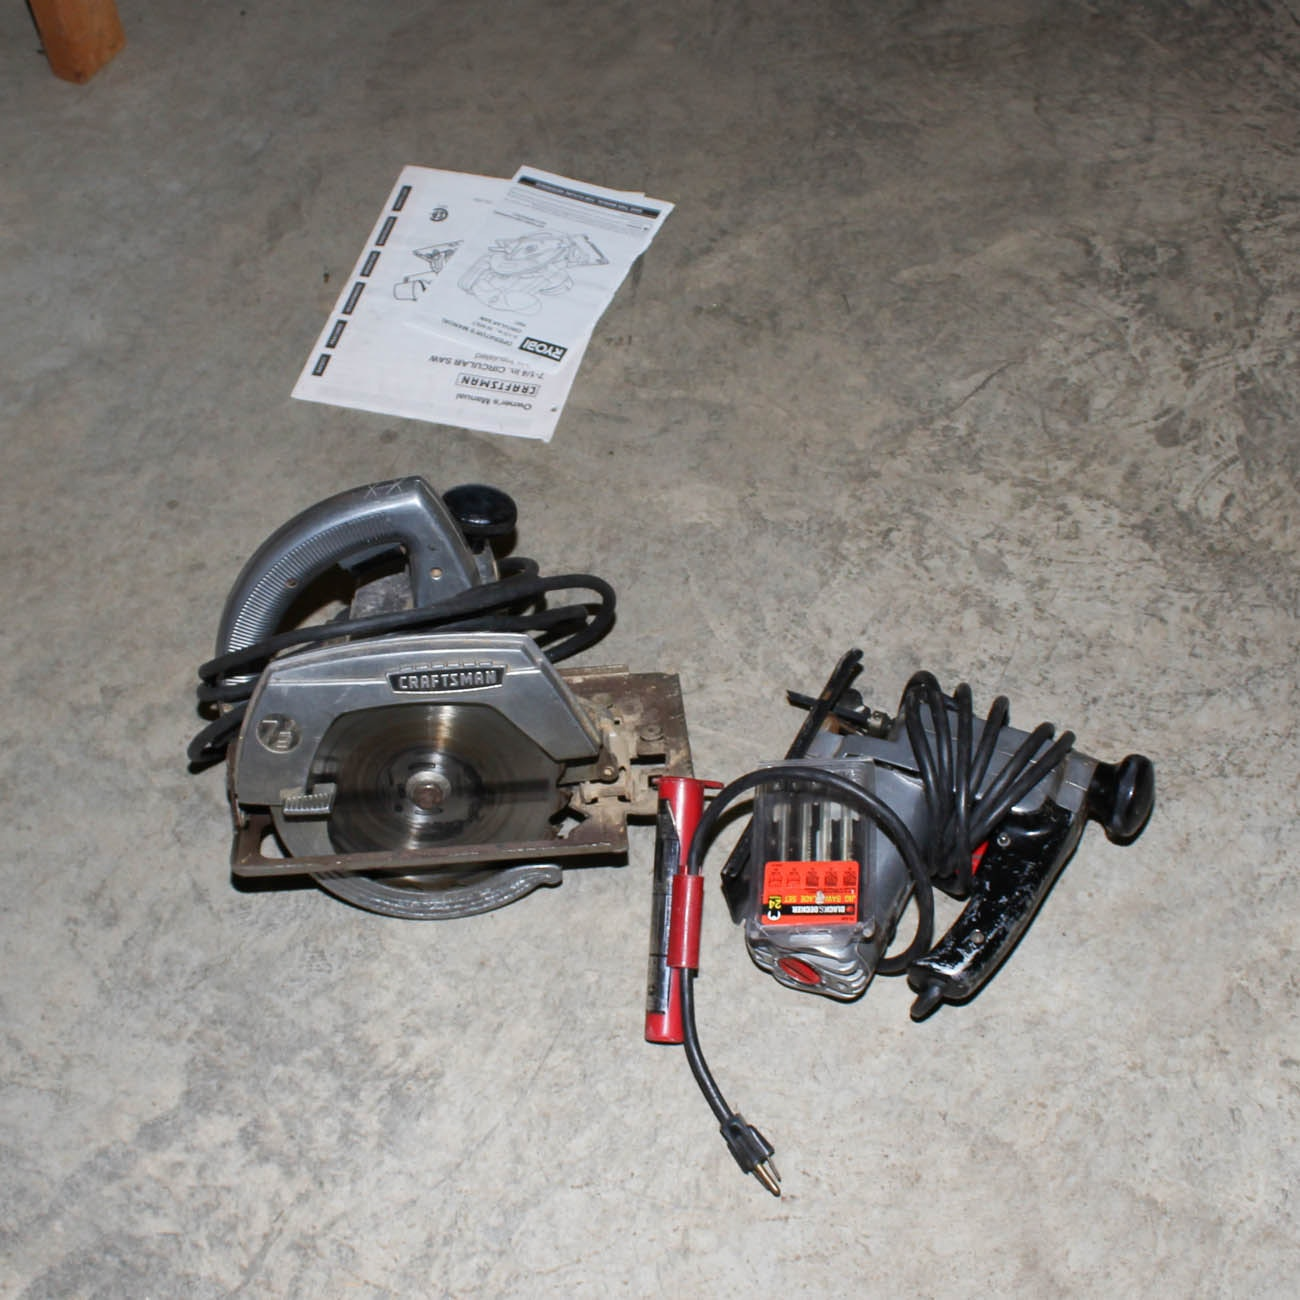 Craftsman Circular Saw and Jigsaw